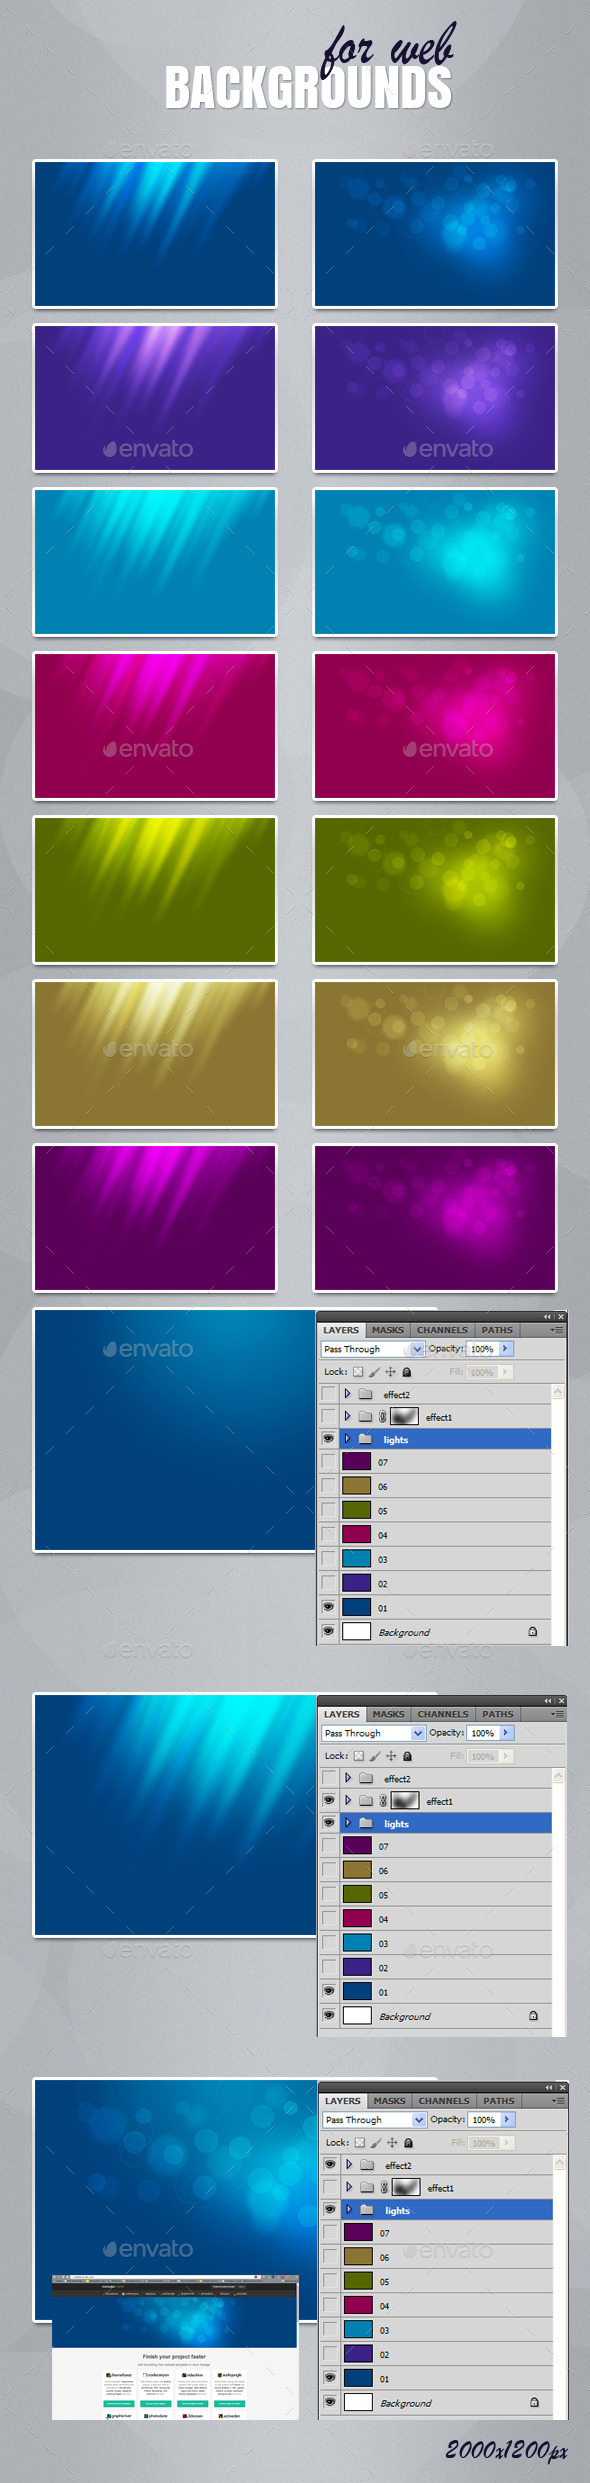 GraphicRiver Backgrounds for web 11638349